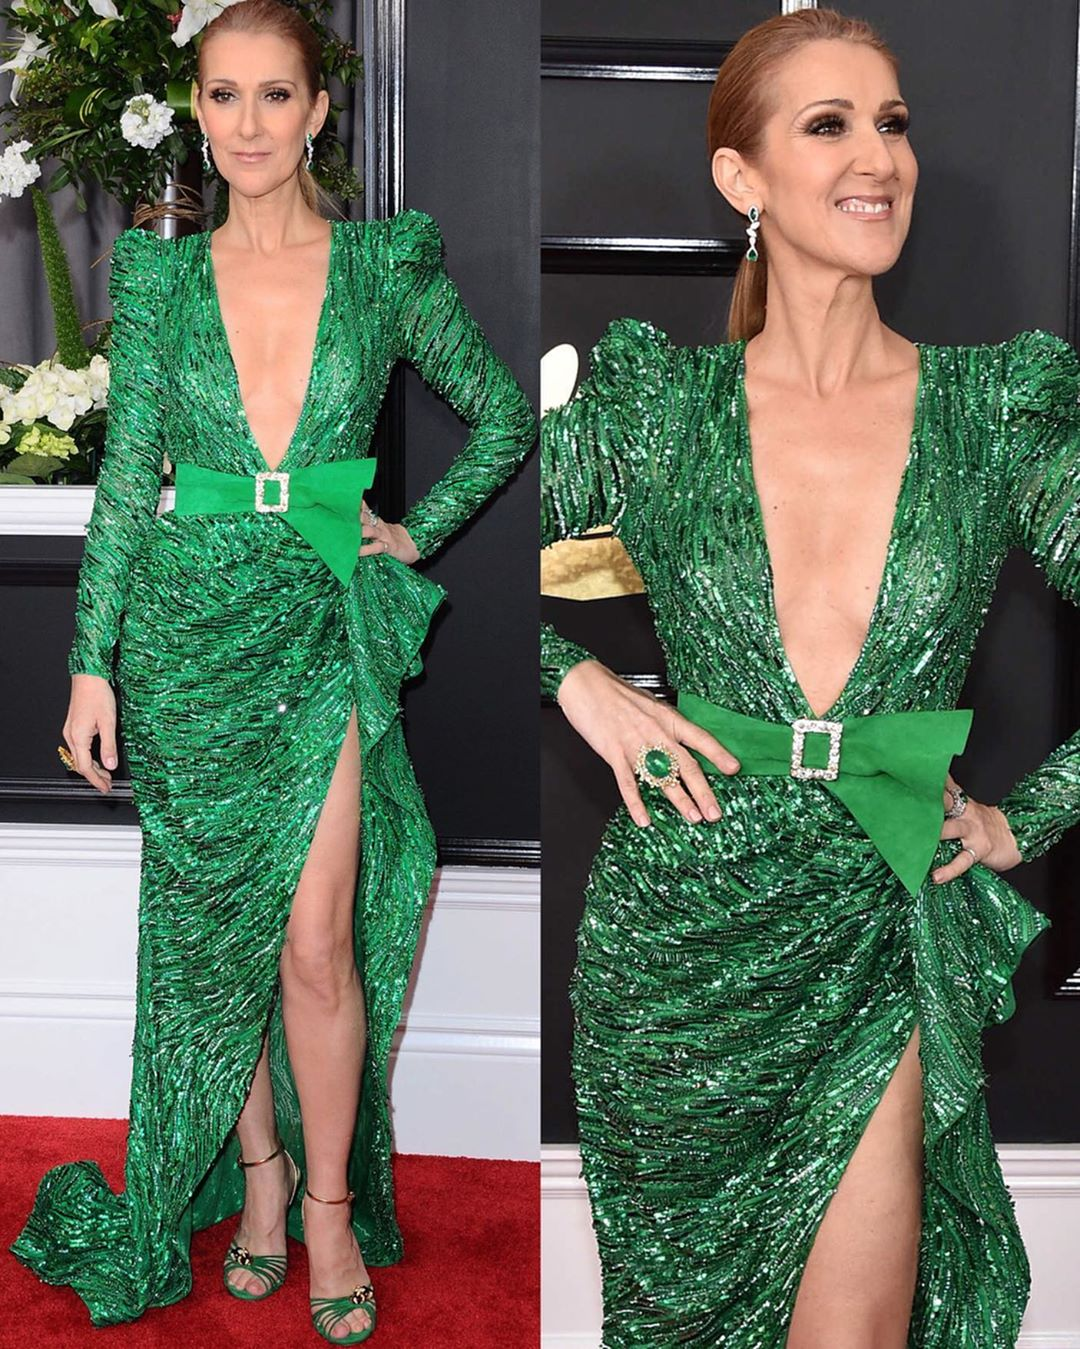 Long Emerald Green Sequin Wrap Dress with Deep V-Neck, Padded Shoulders, Train and High Slit.